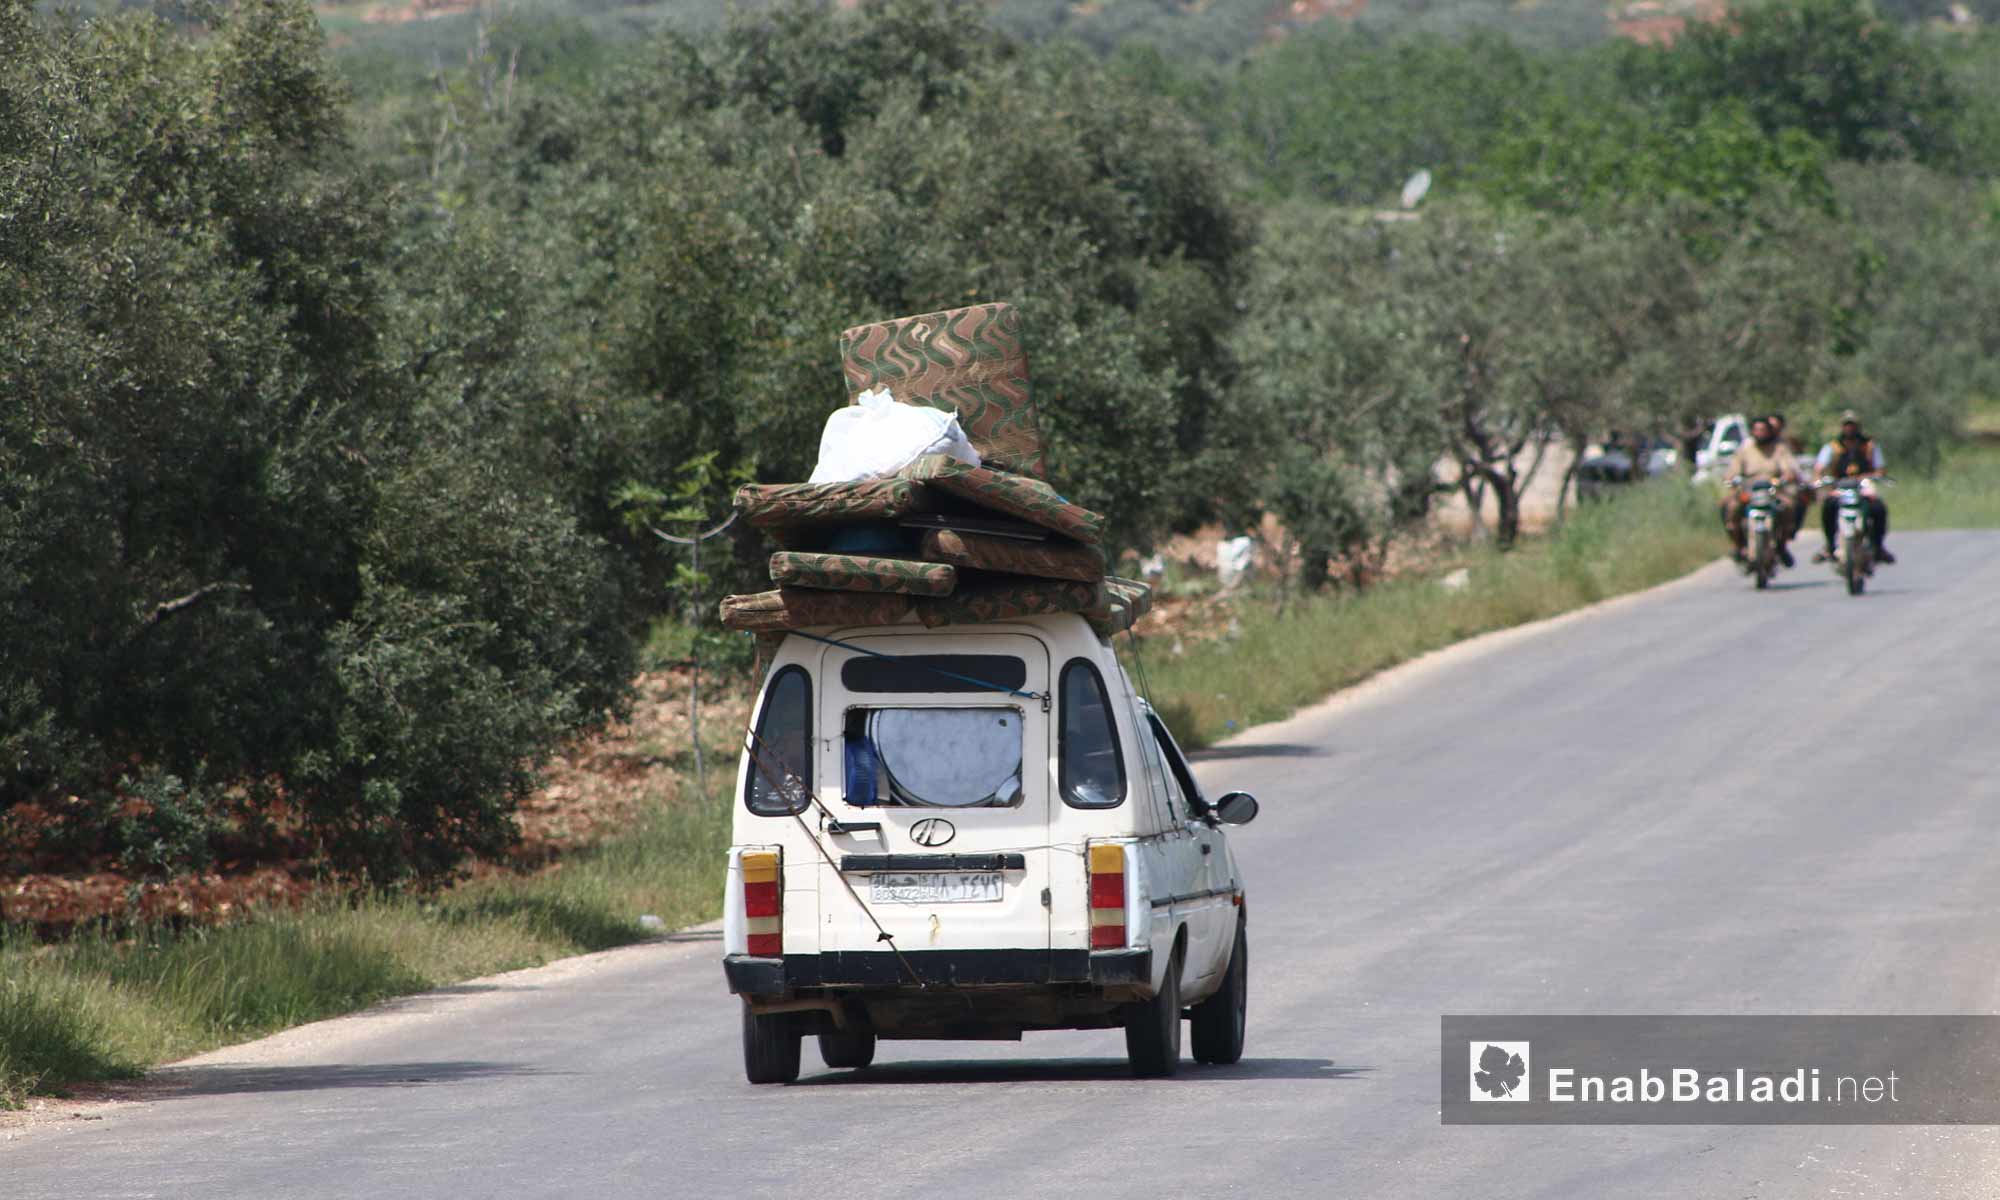 Families displaced from the rural parts of Hama and Idlib due to the extensive Russian aerial shelling – May 1, 2019 (Enab Baladi)